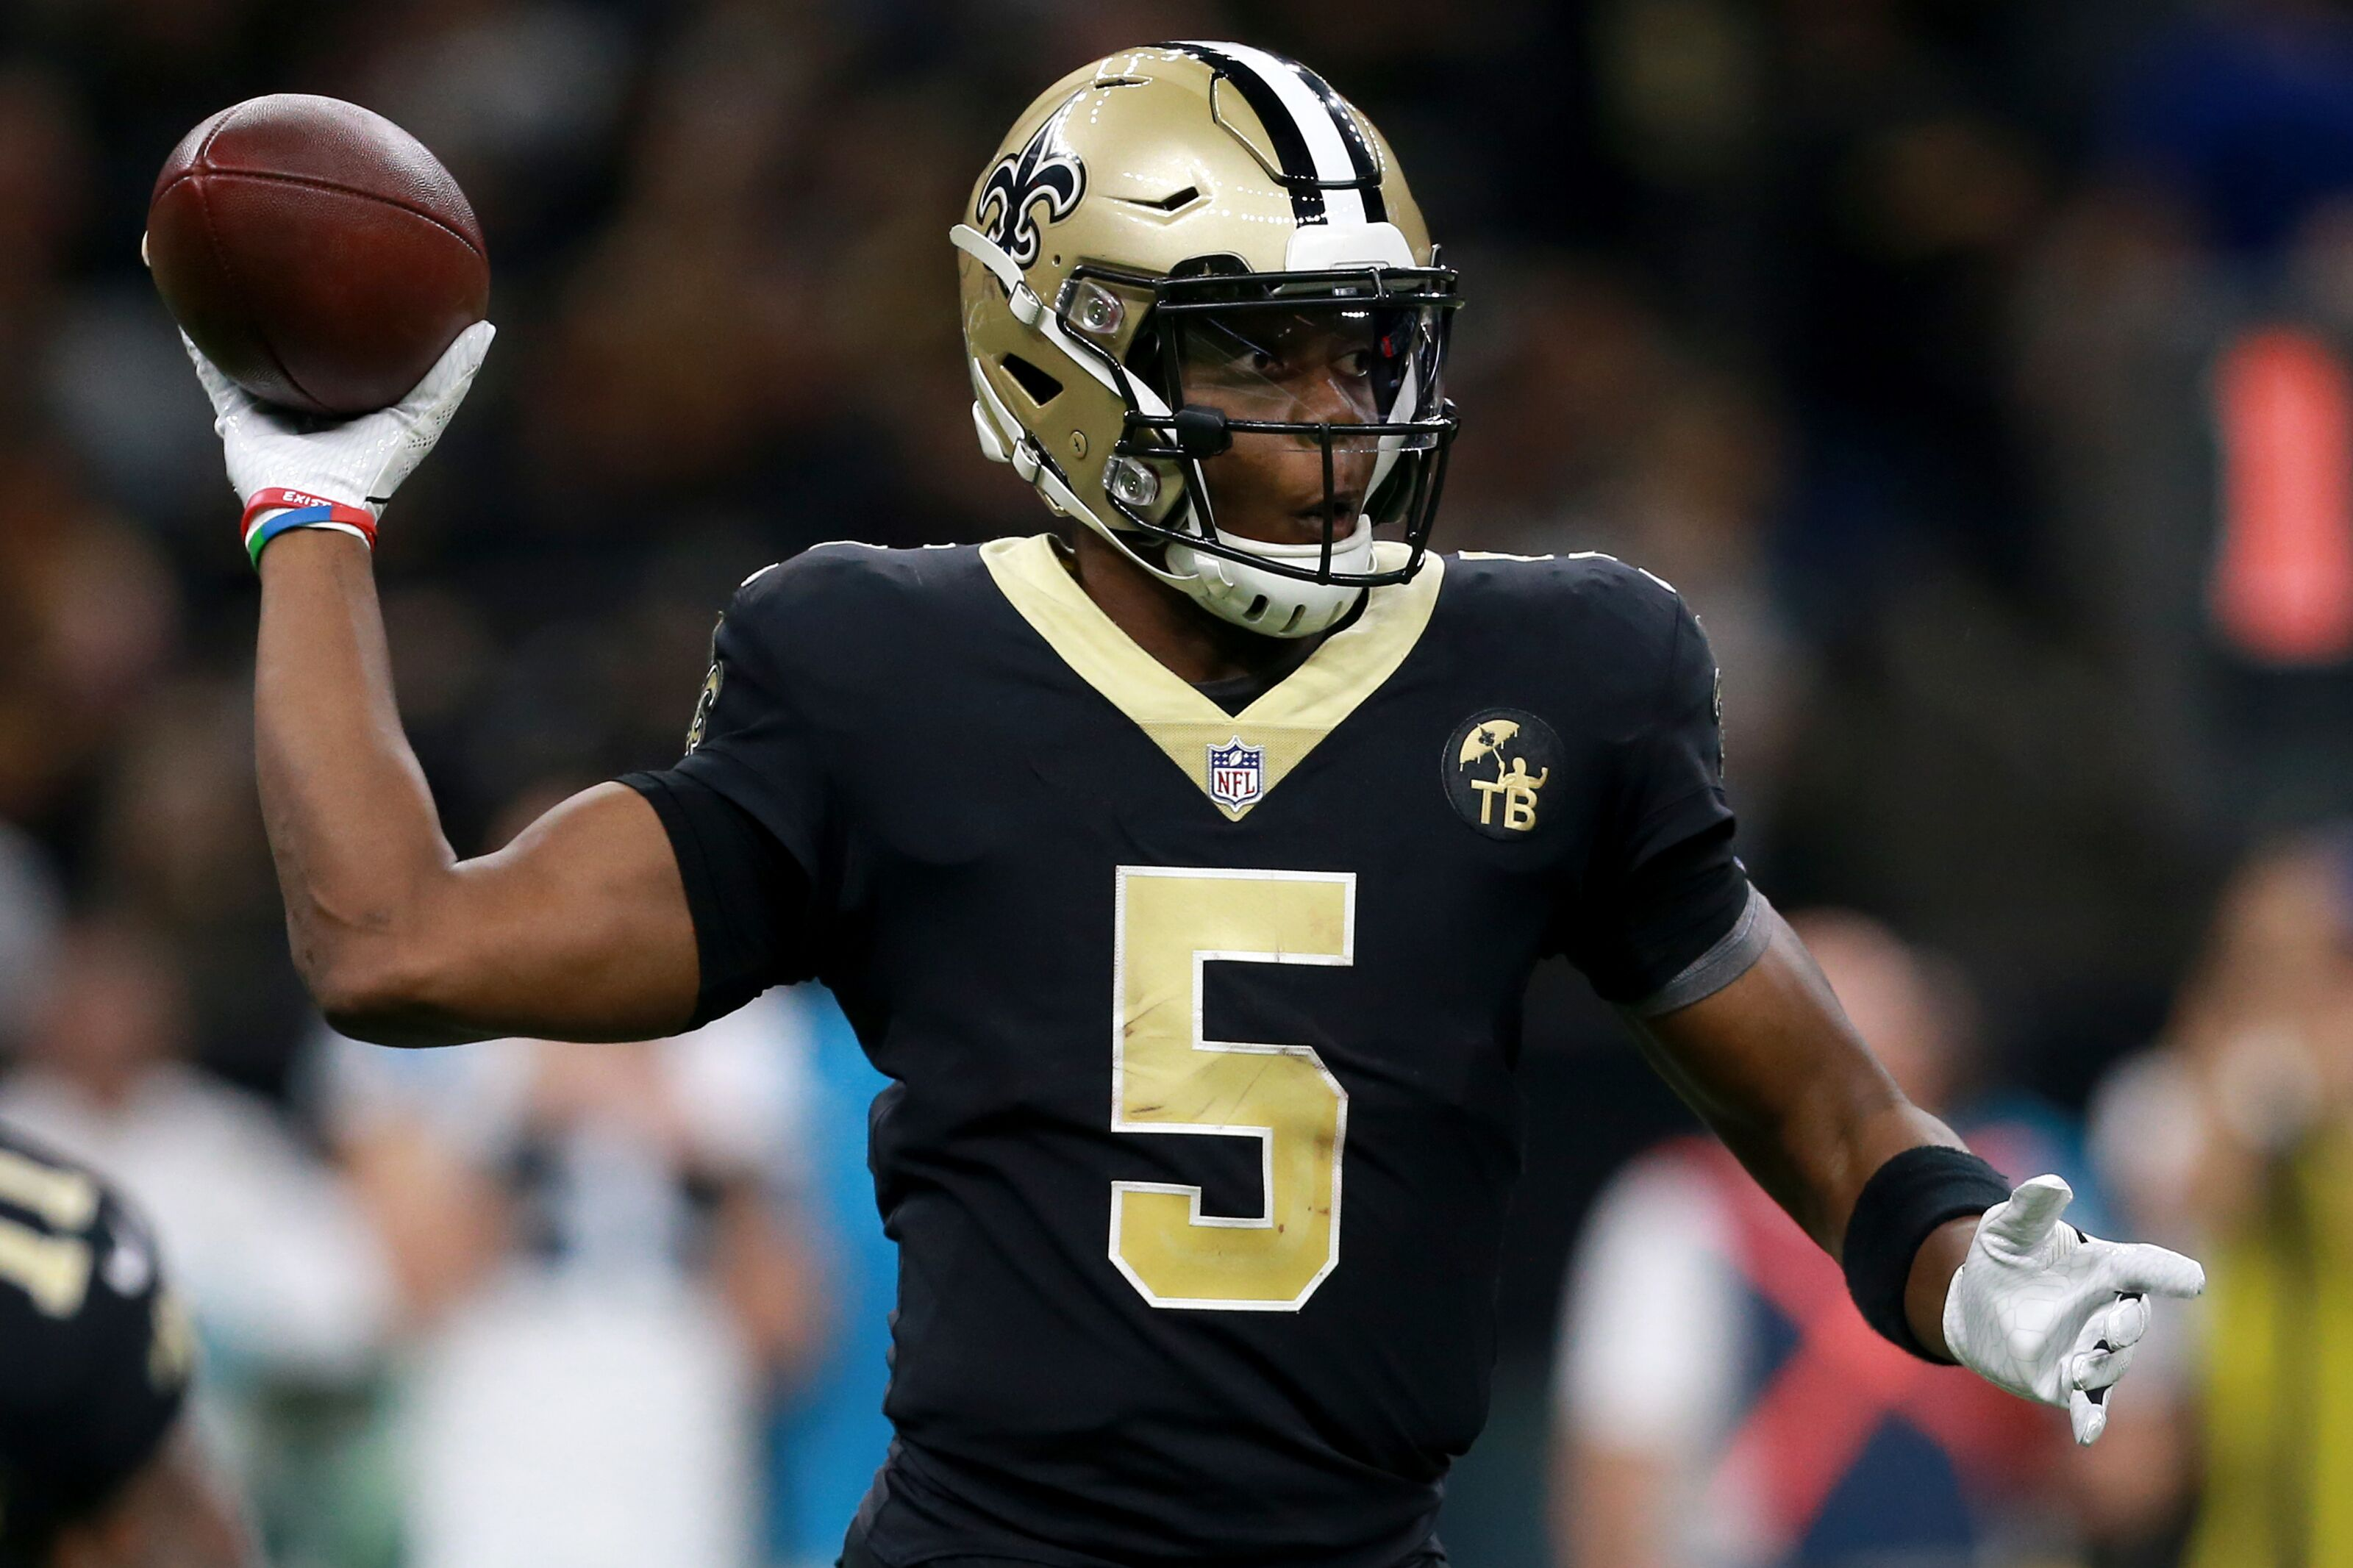 NFL free agency could really help QB needy teams in 2020